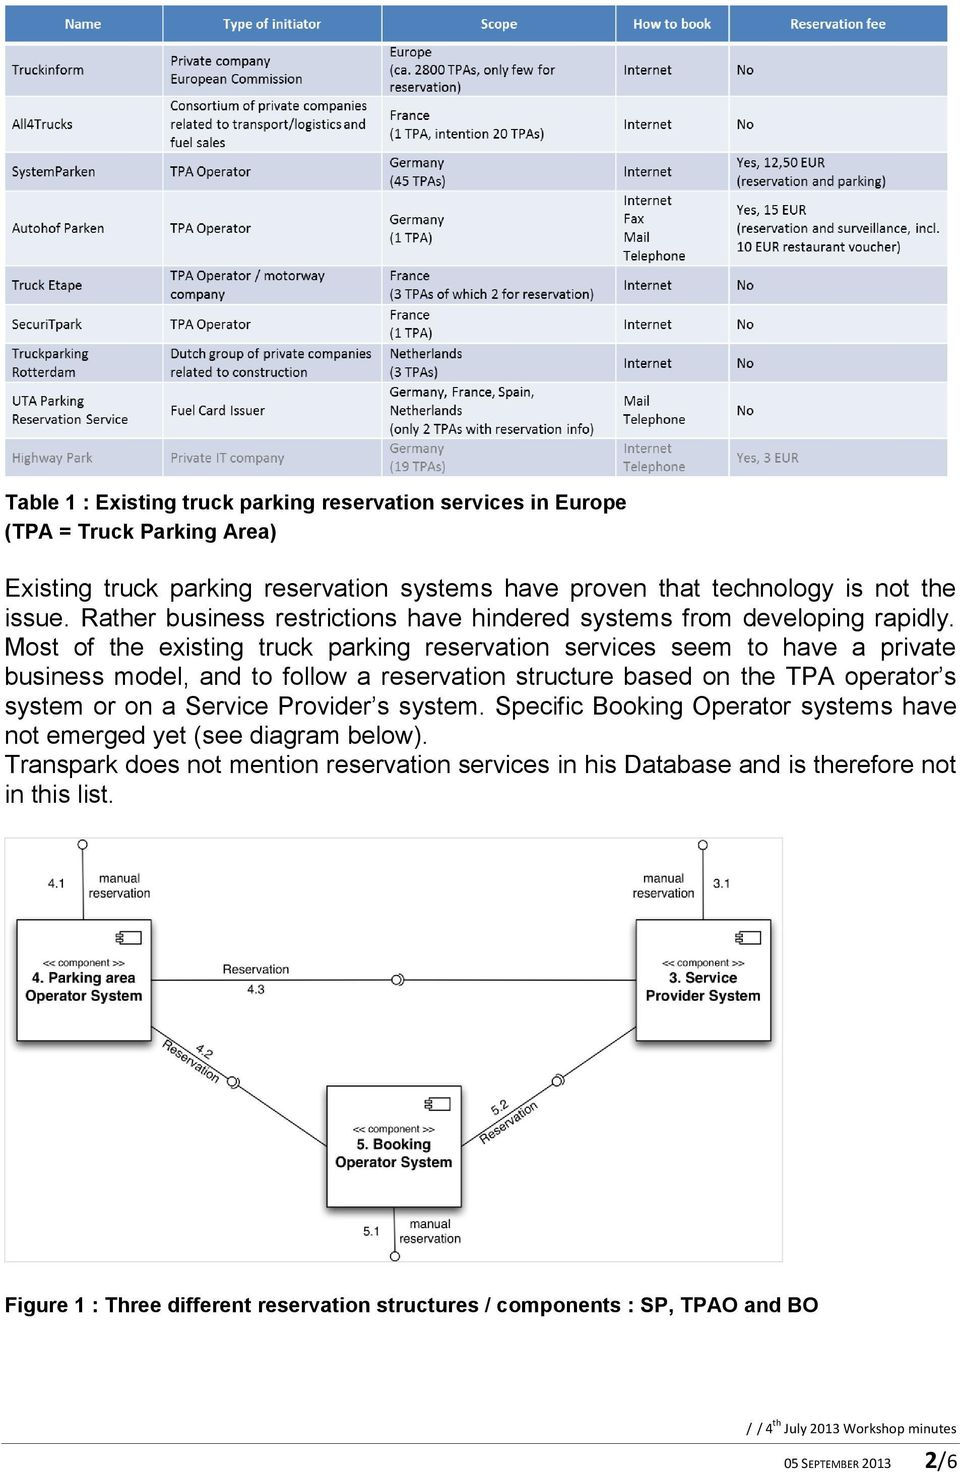 Most of the existing truck parking reservation services seem to have a private business model, and to follow a reservation structure based on the TPA operator s system or on a Service